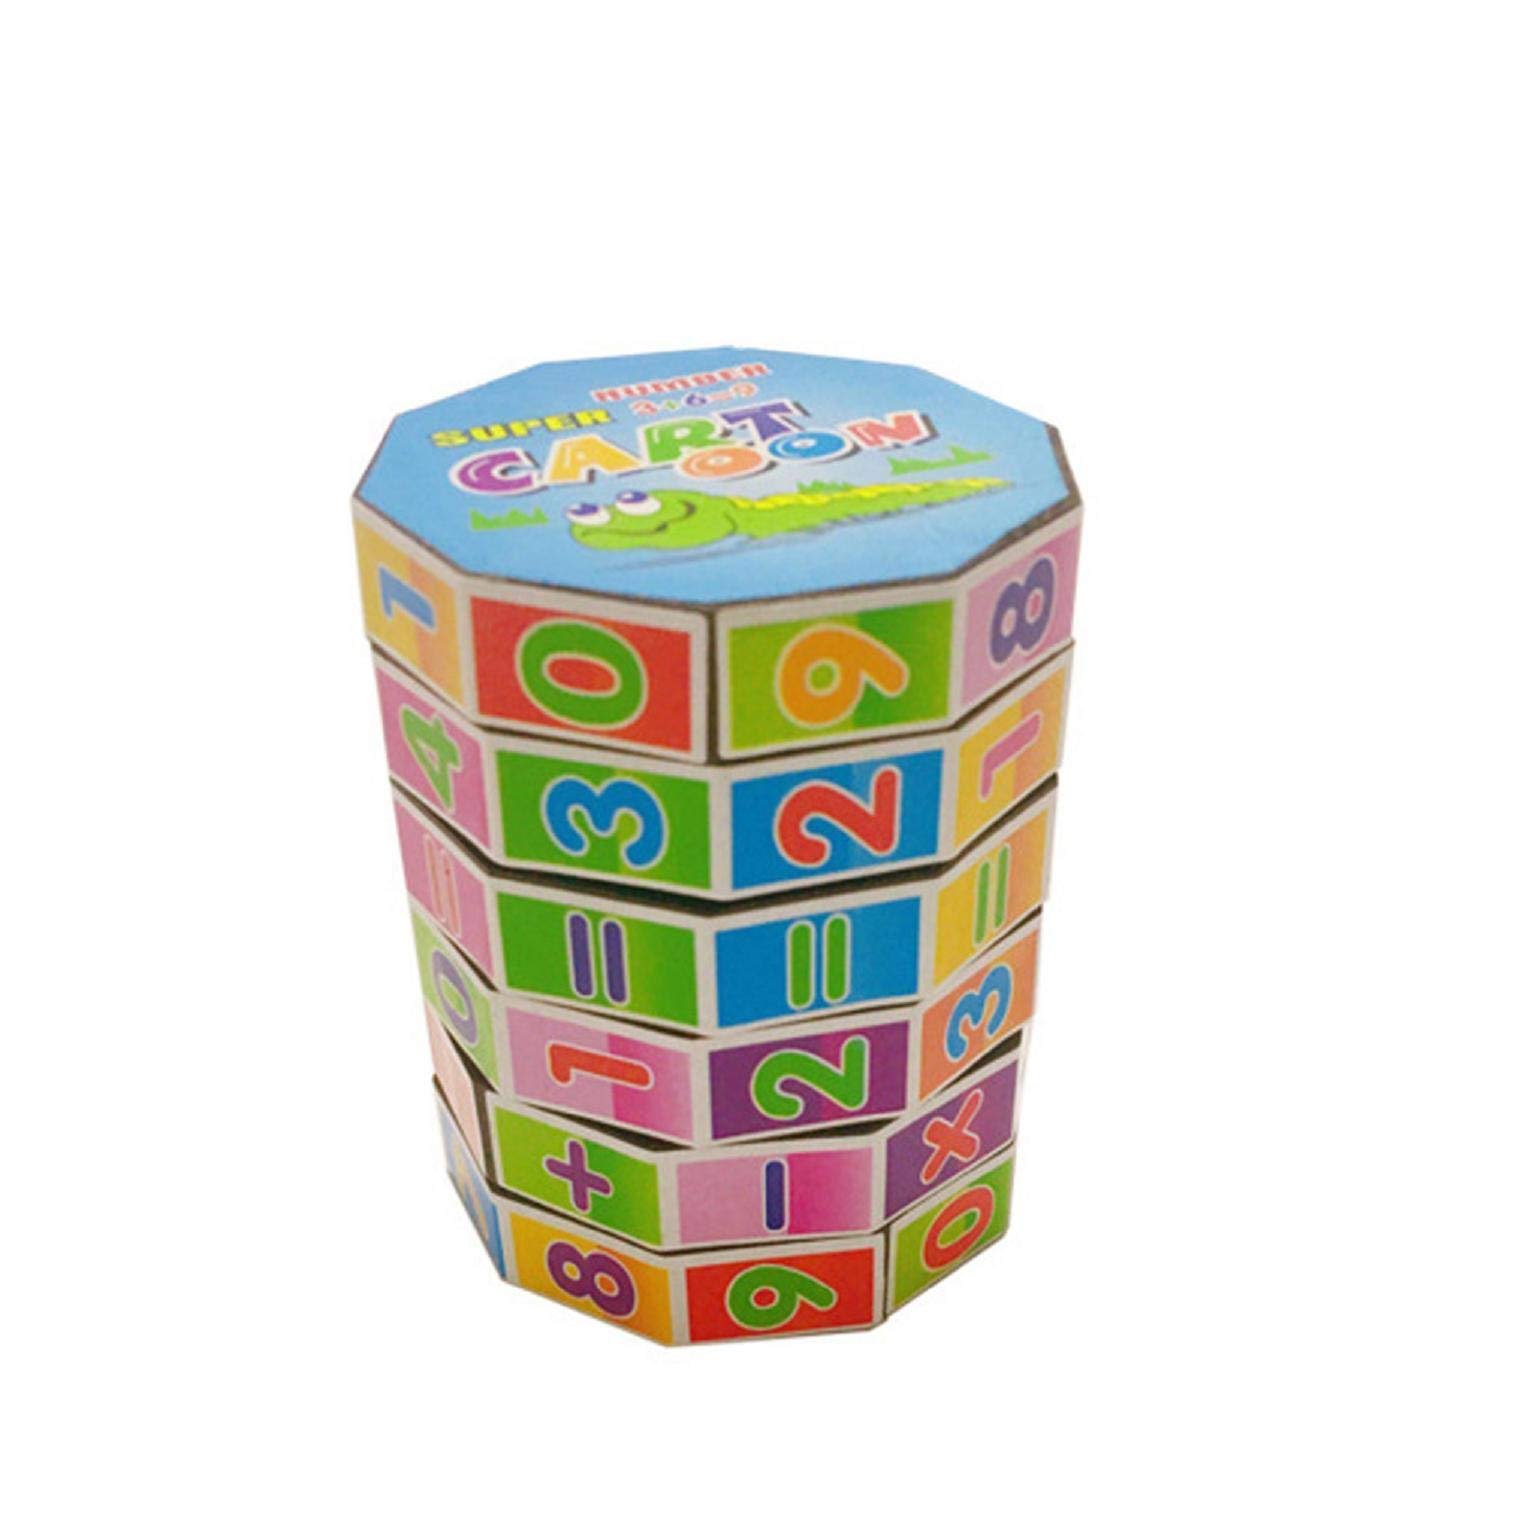 Dartphew Educational Toys Children Mathematics Numbers Magic Cube Toy Puzzle Portable Game Colorful Maths Numbers Counting for Boys and Girls Christmas Birthday Gift Maths RelaxingTeaching Way